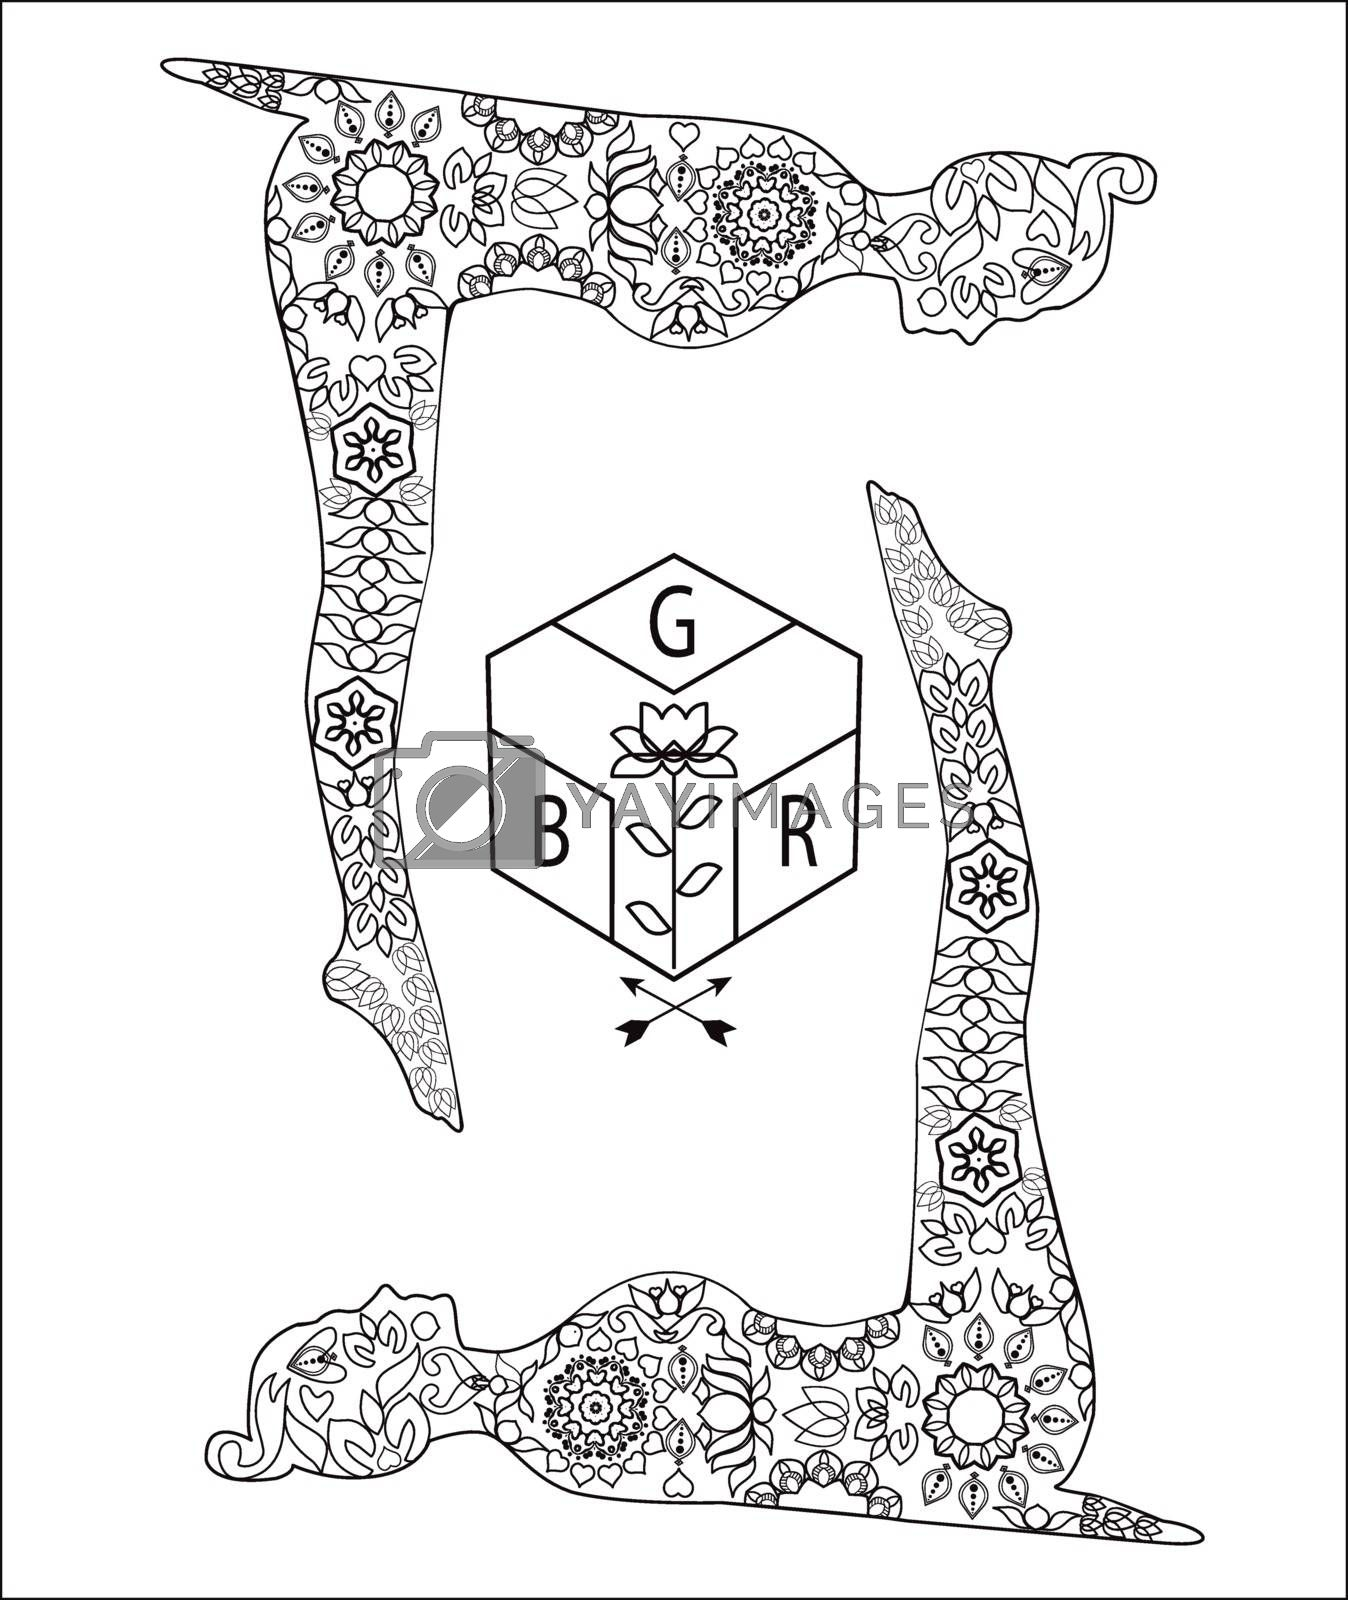 Yoga and meditation coloring book for adults With Yoga Poses and lotus logo.